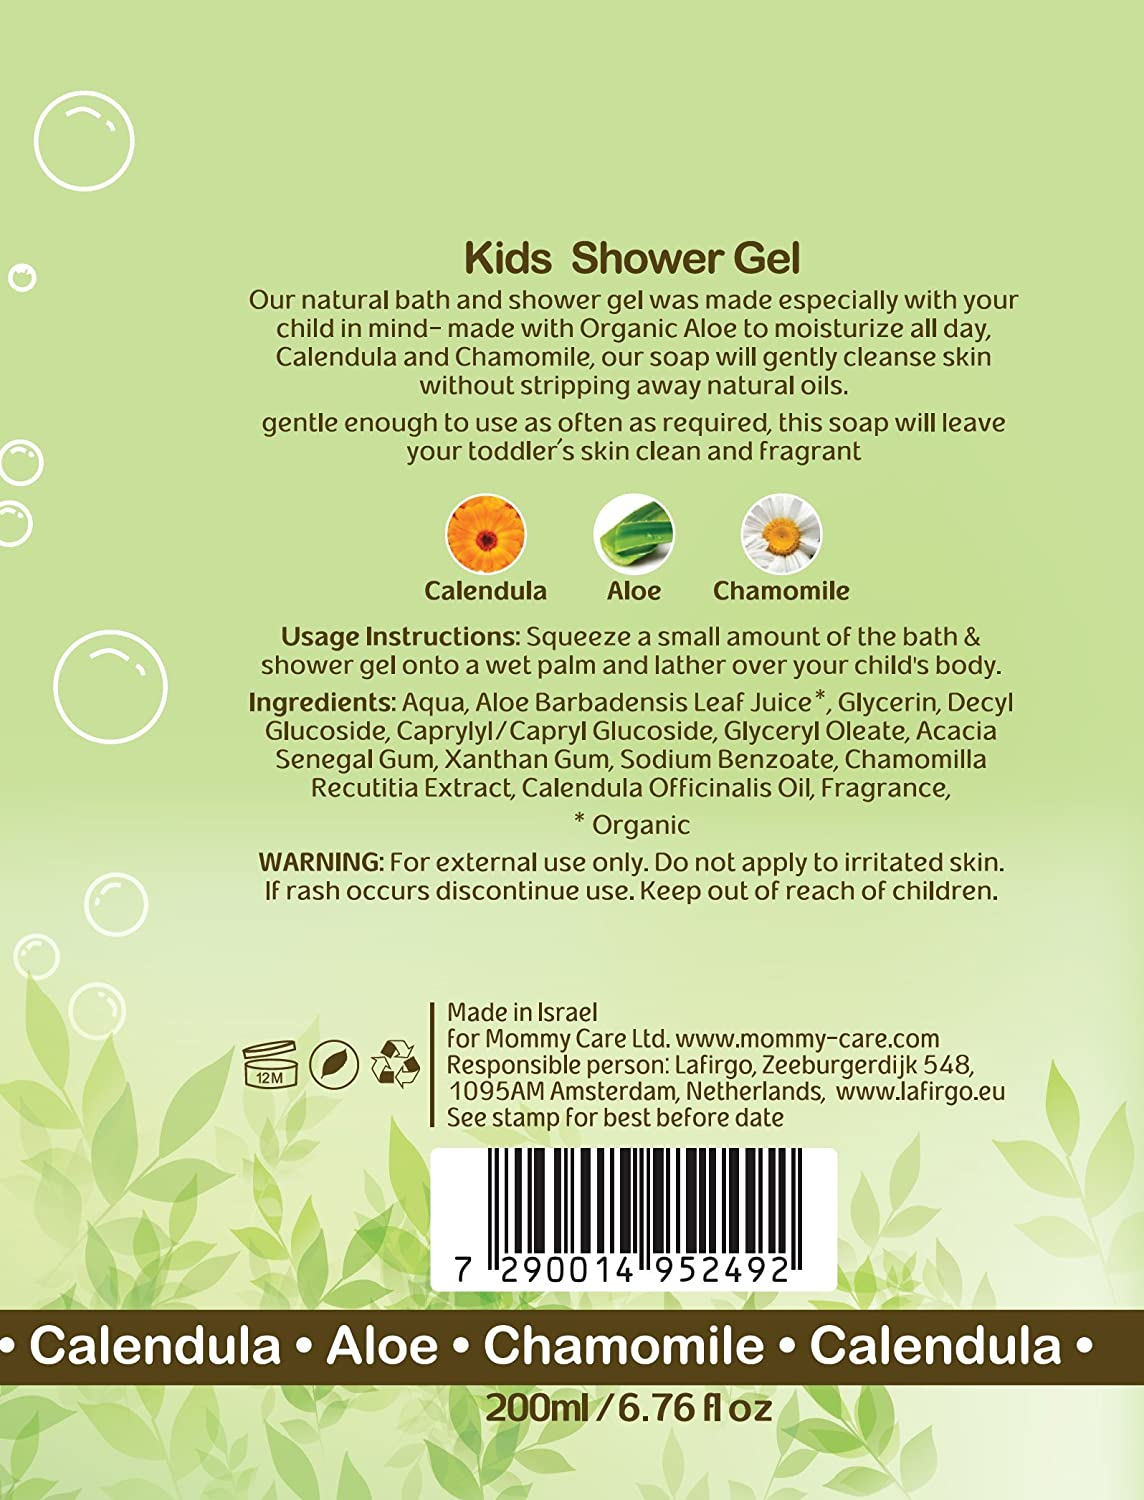 Mommy Care Baby Bath Time Shower Gel Soap Certified Organic 6.76 fl.oz Natural Children Body Wash for Dry Skin Great for Eczema and Newborns Sensitive Skin 200ml